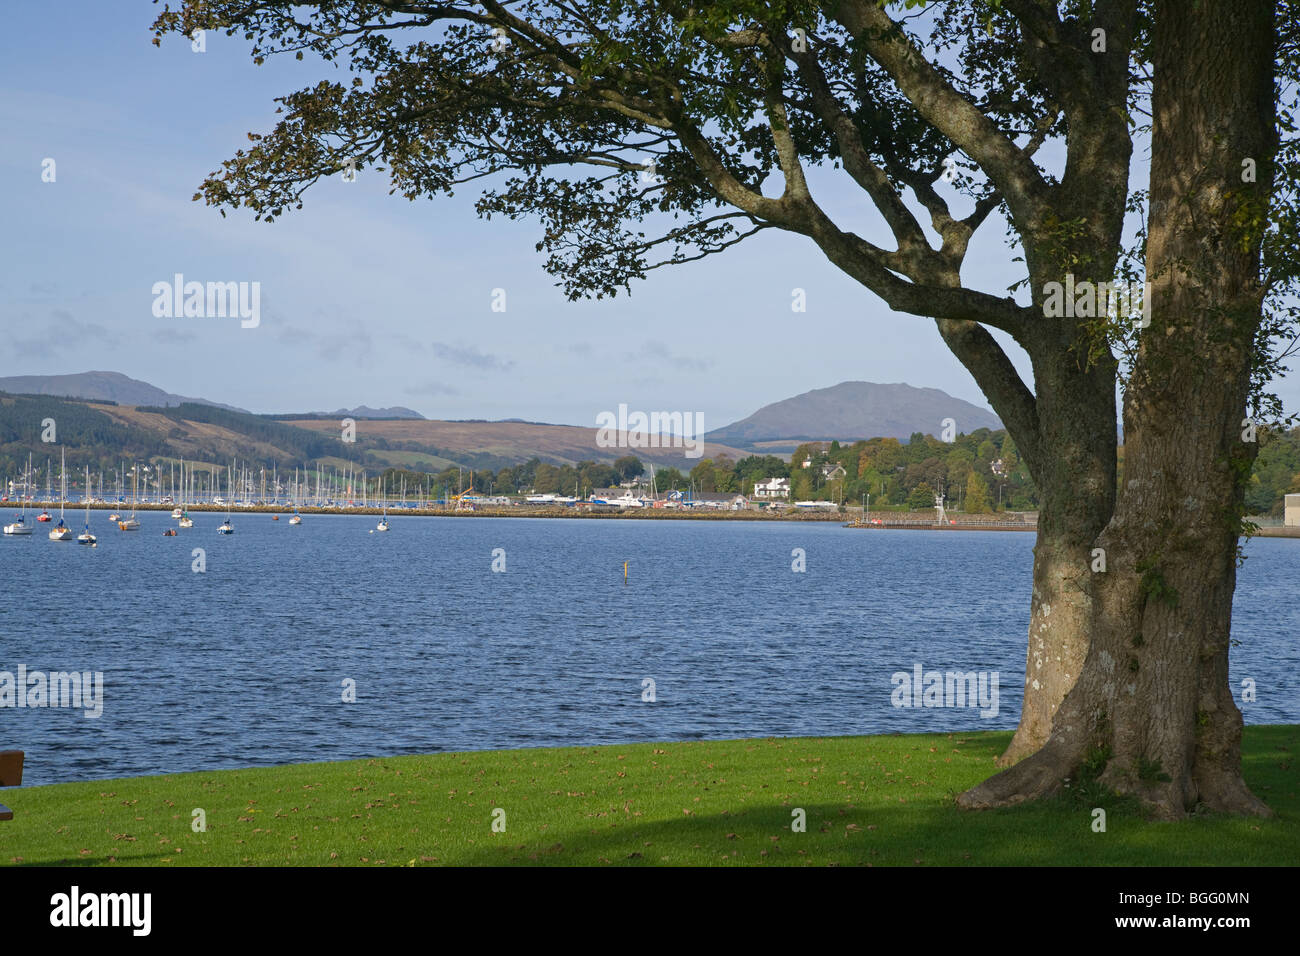 Looking up Gare loch from Rhu, Helensburgh, Argyll, Scotland, October, 2009 - Stock Image